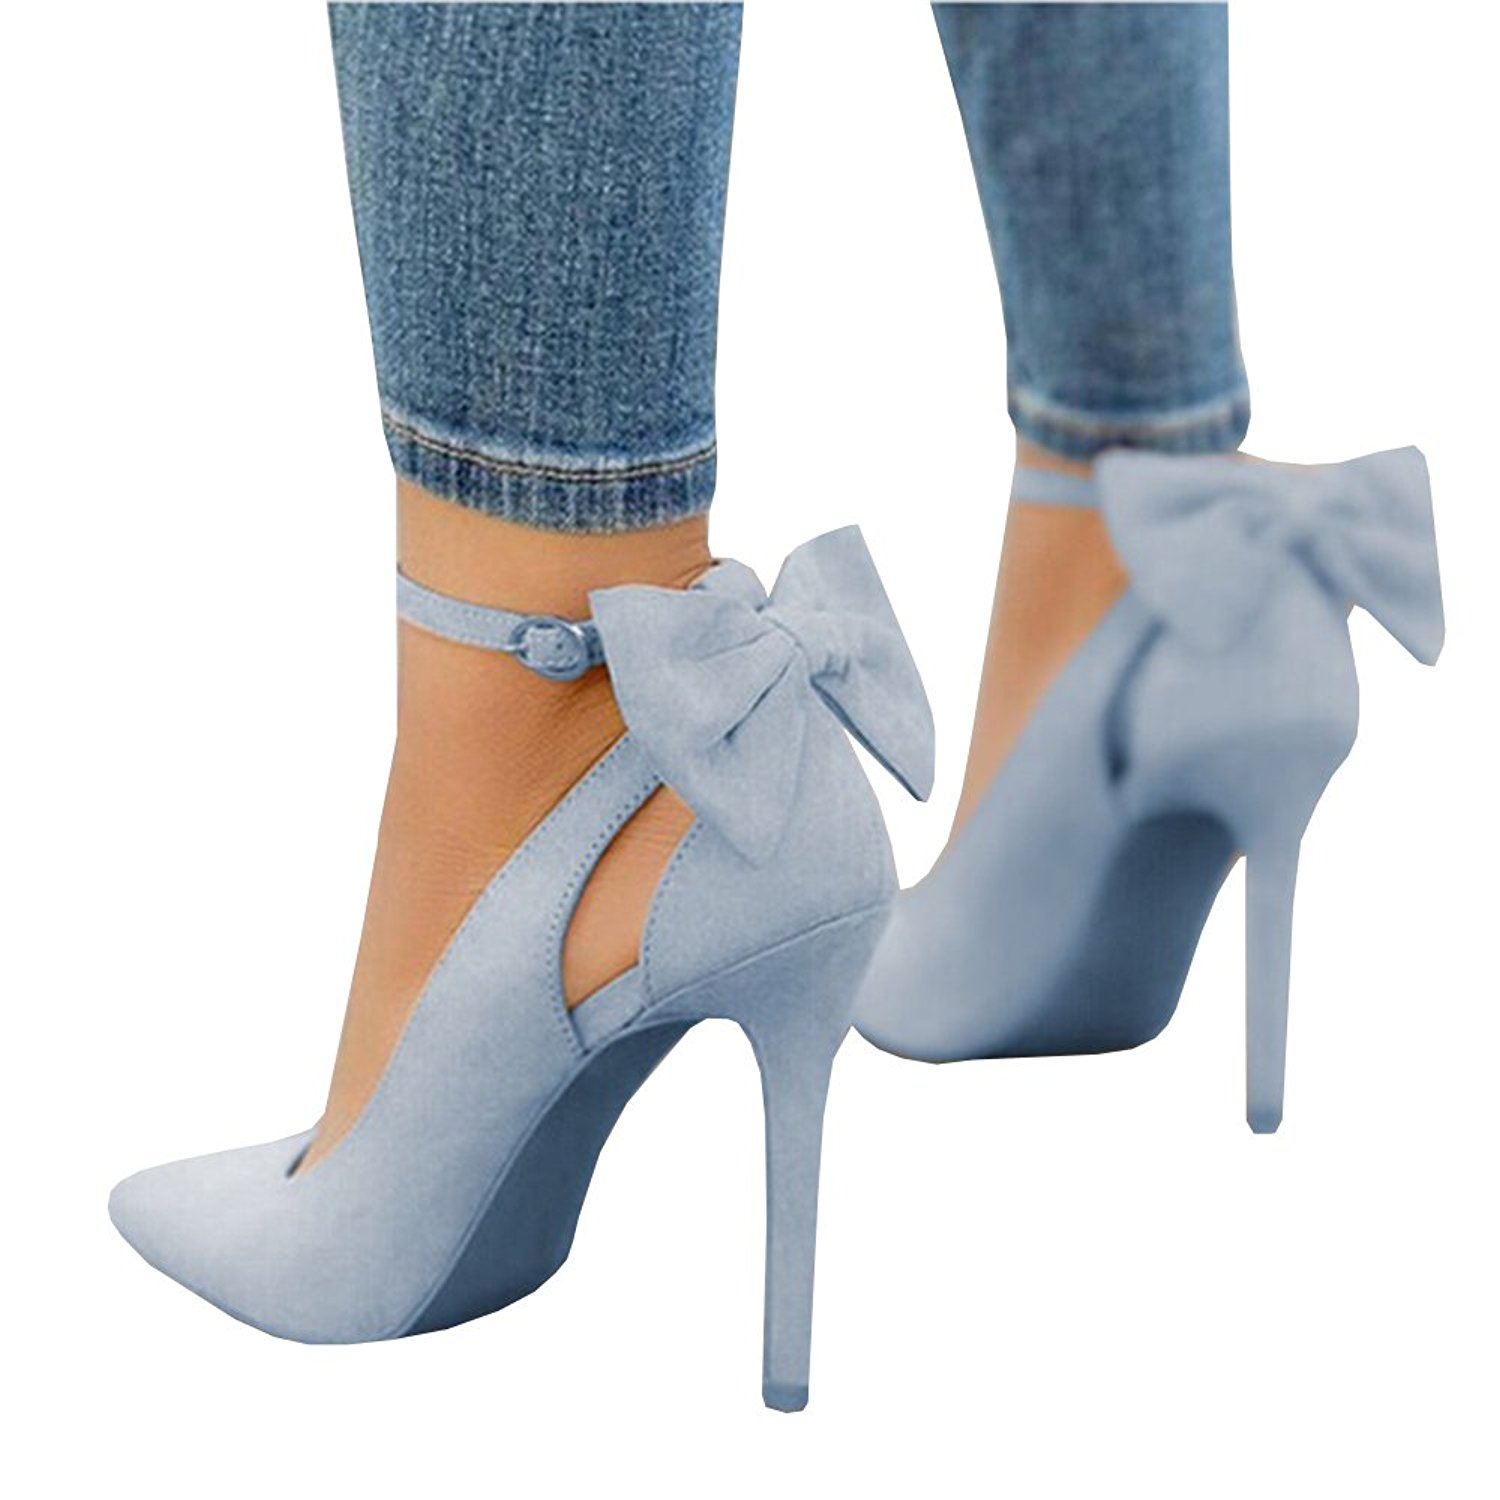 Fashare Womens Pointed Toe High Heels Bowtie Back Ankle Buckle Strap D'Orsay Dress Pumps Shoes